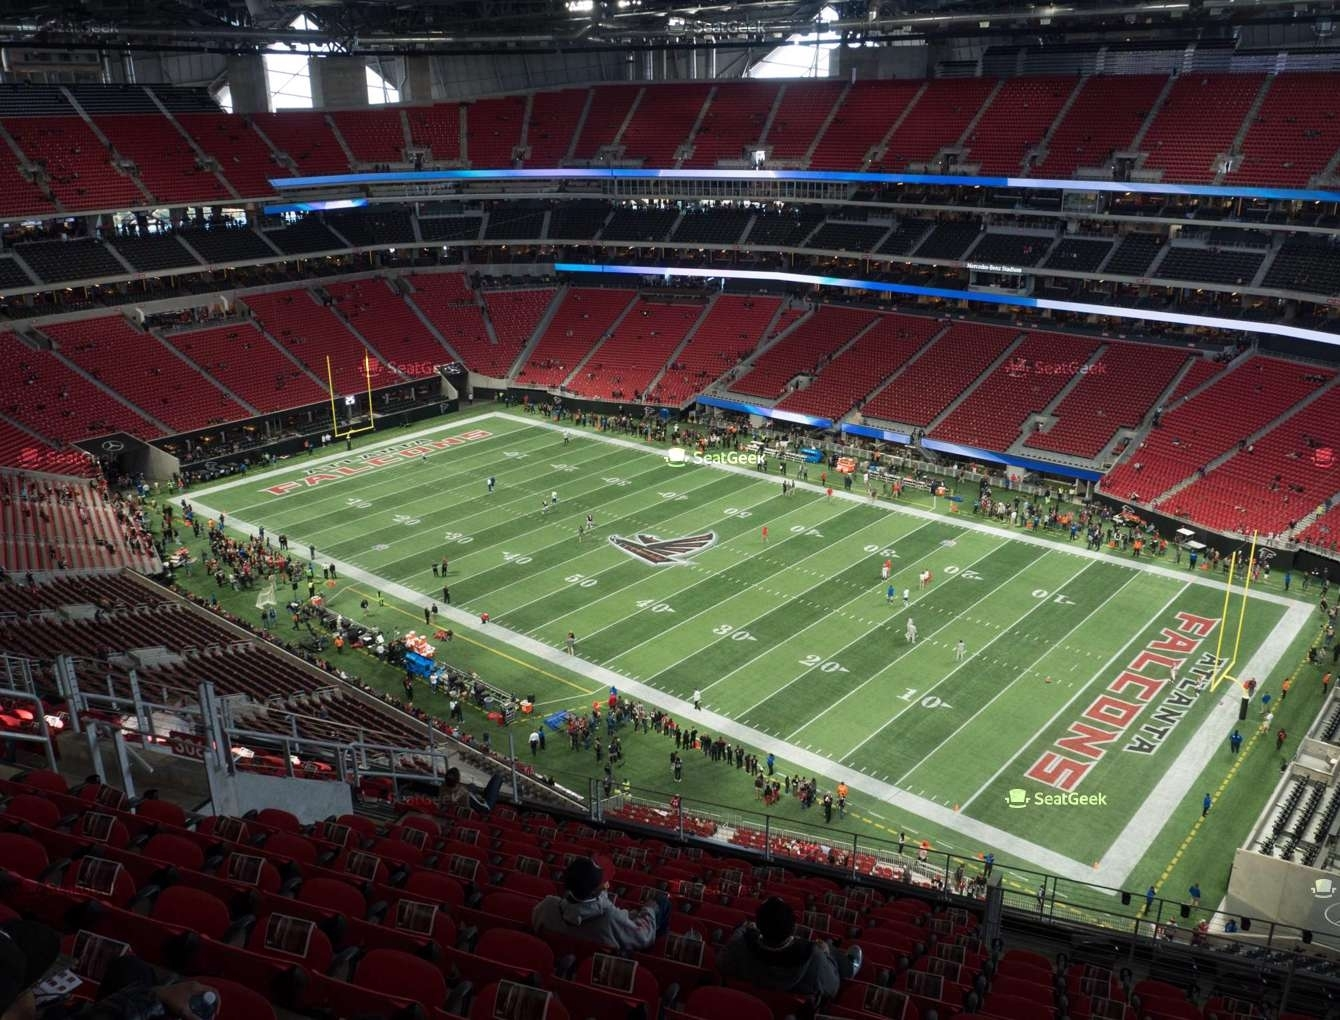 Mercedes-Benz Stadium Section 306 Seat Views | Seatgeek regarding Super Bowl Atlanta Seating Chart